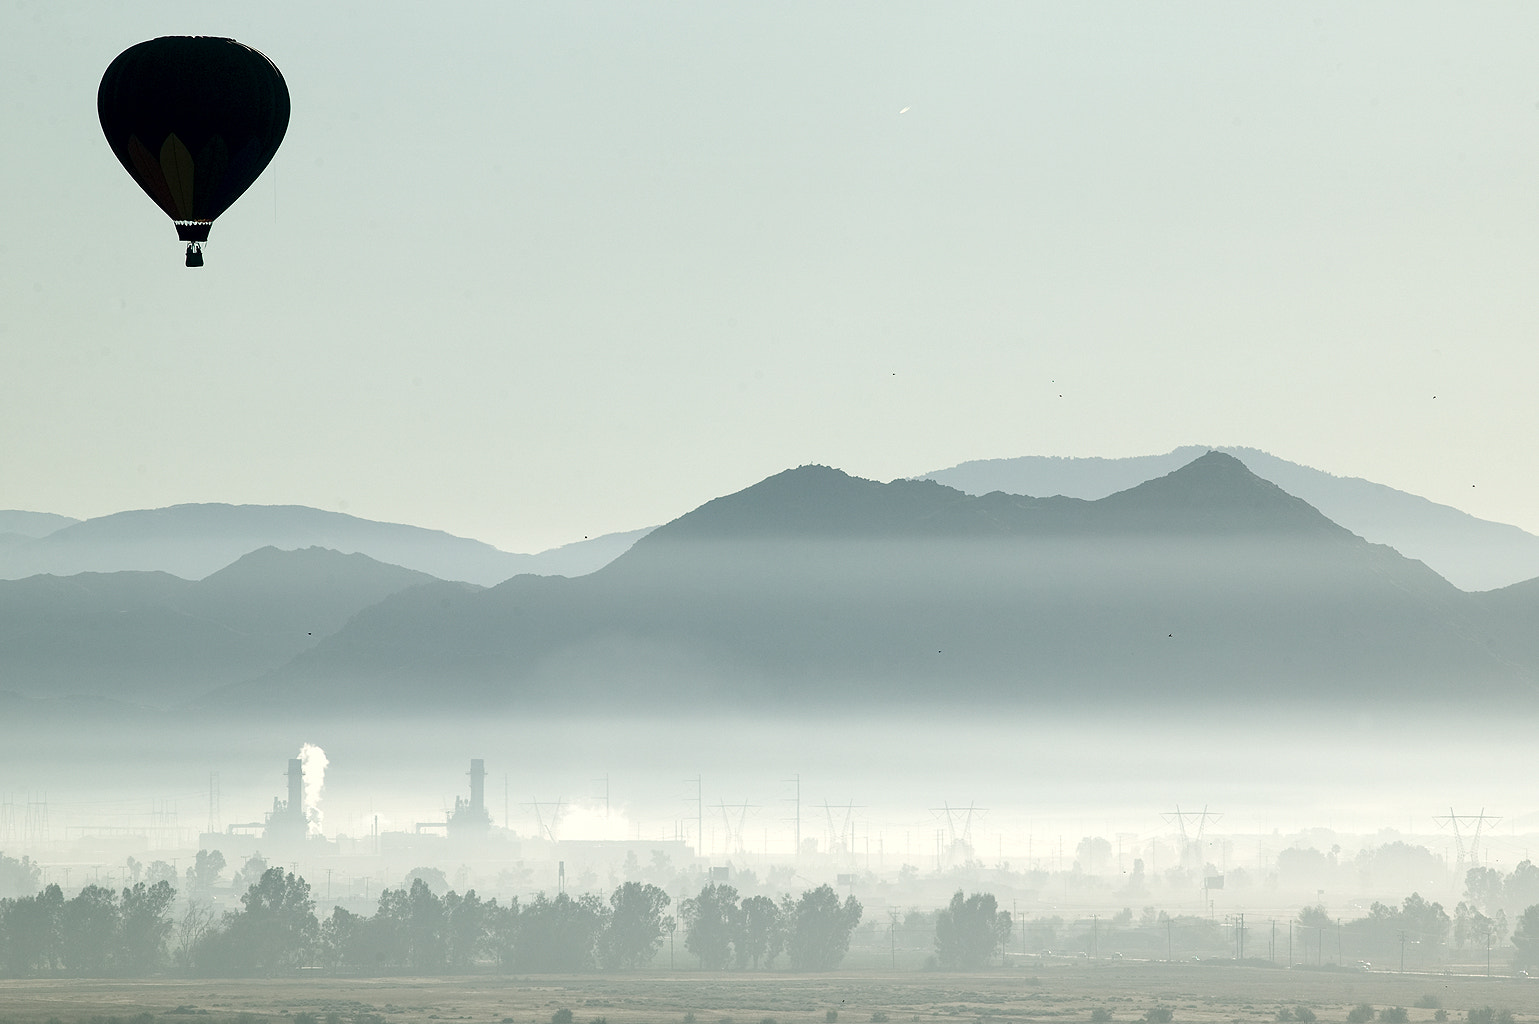 Photograph Balloon by Andres Harambour on 500px